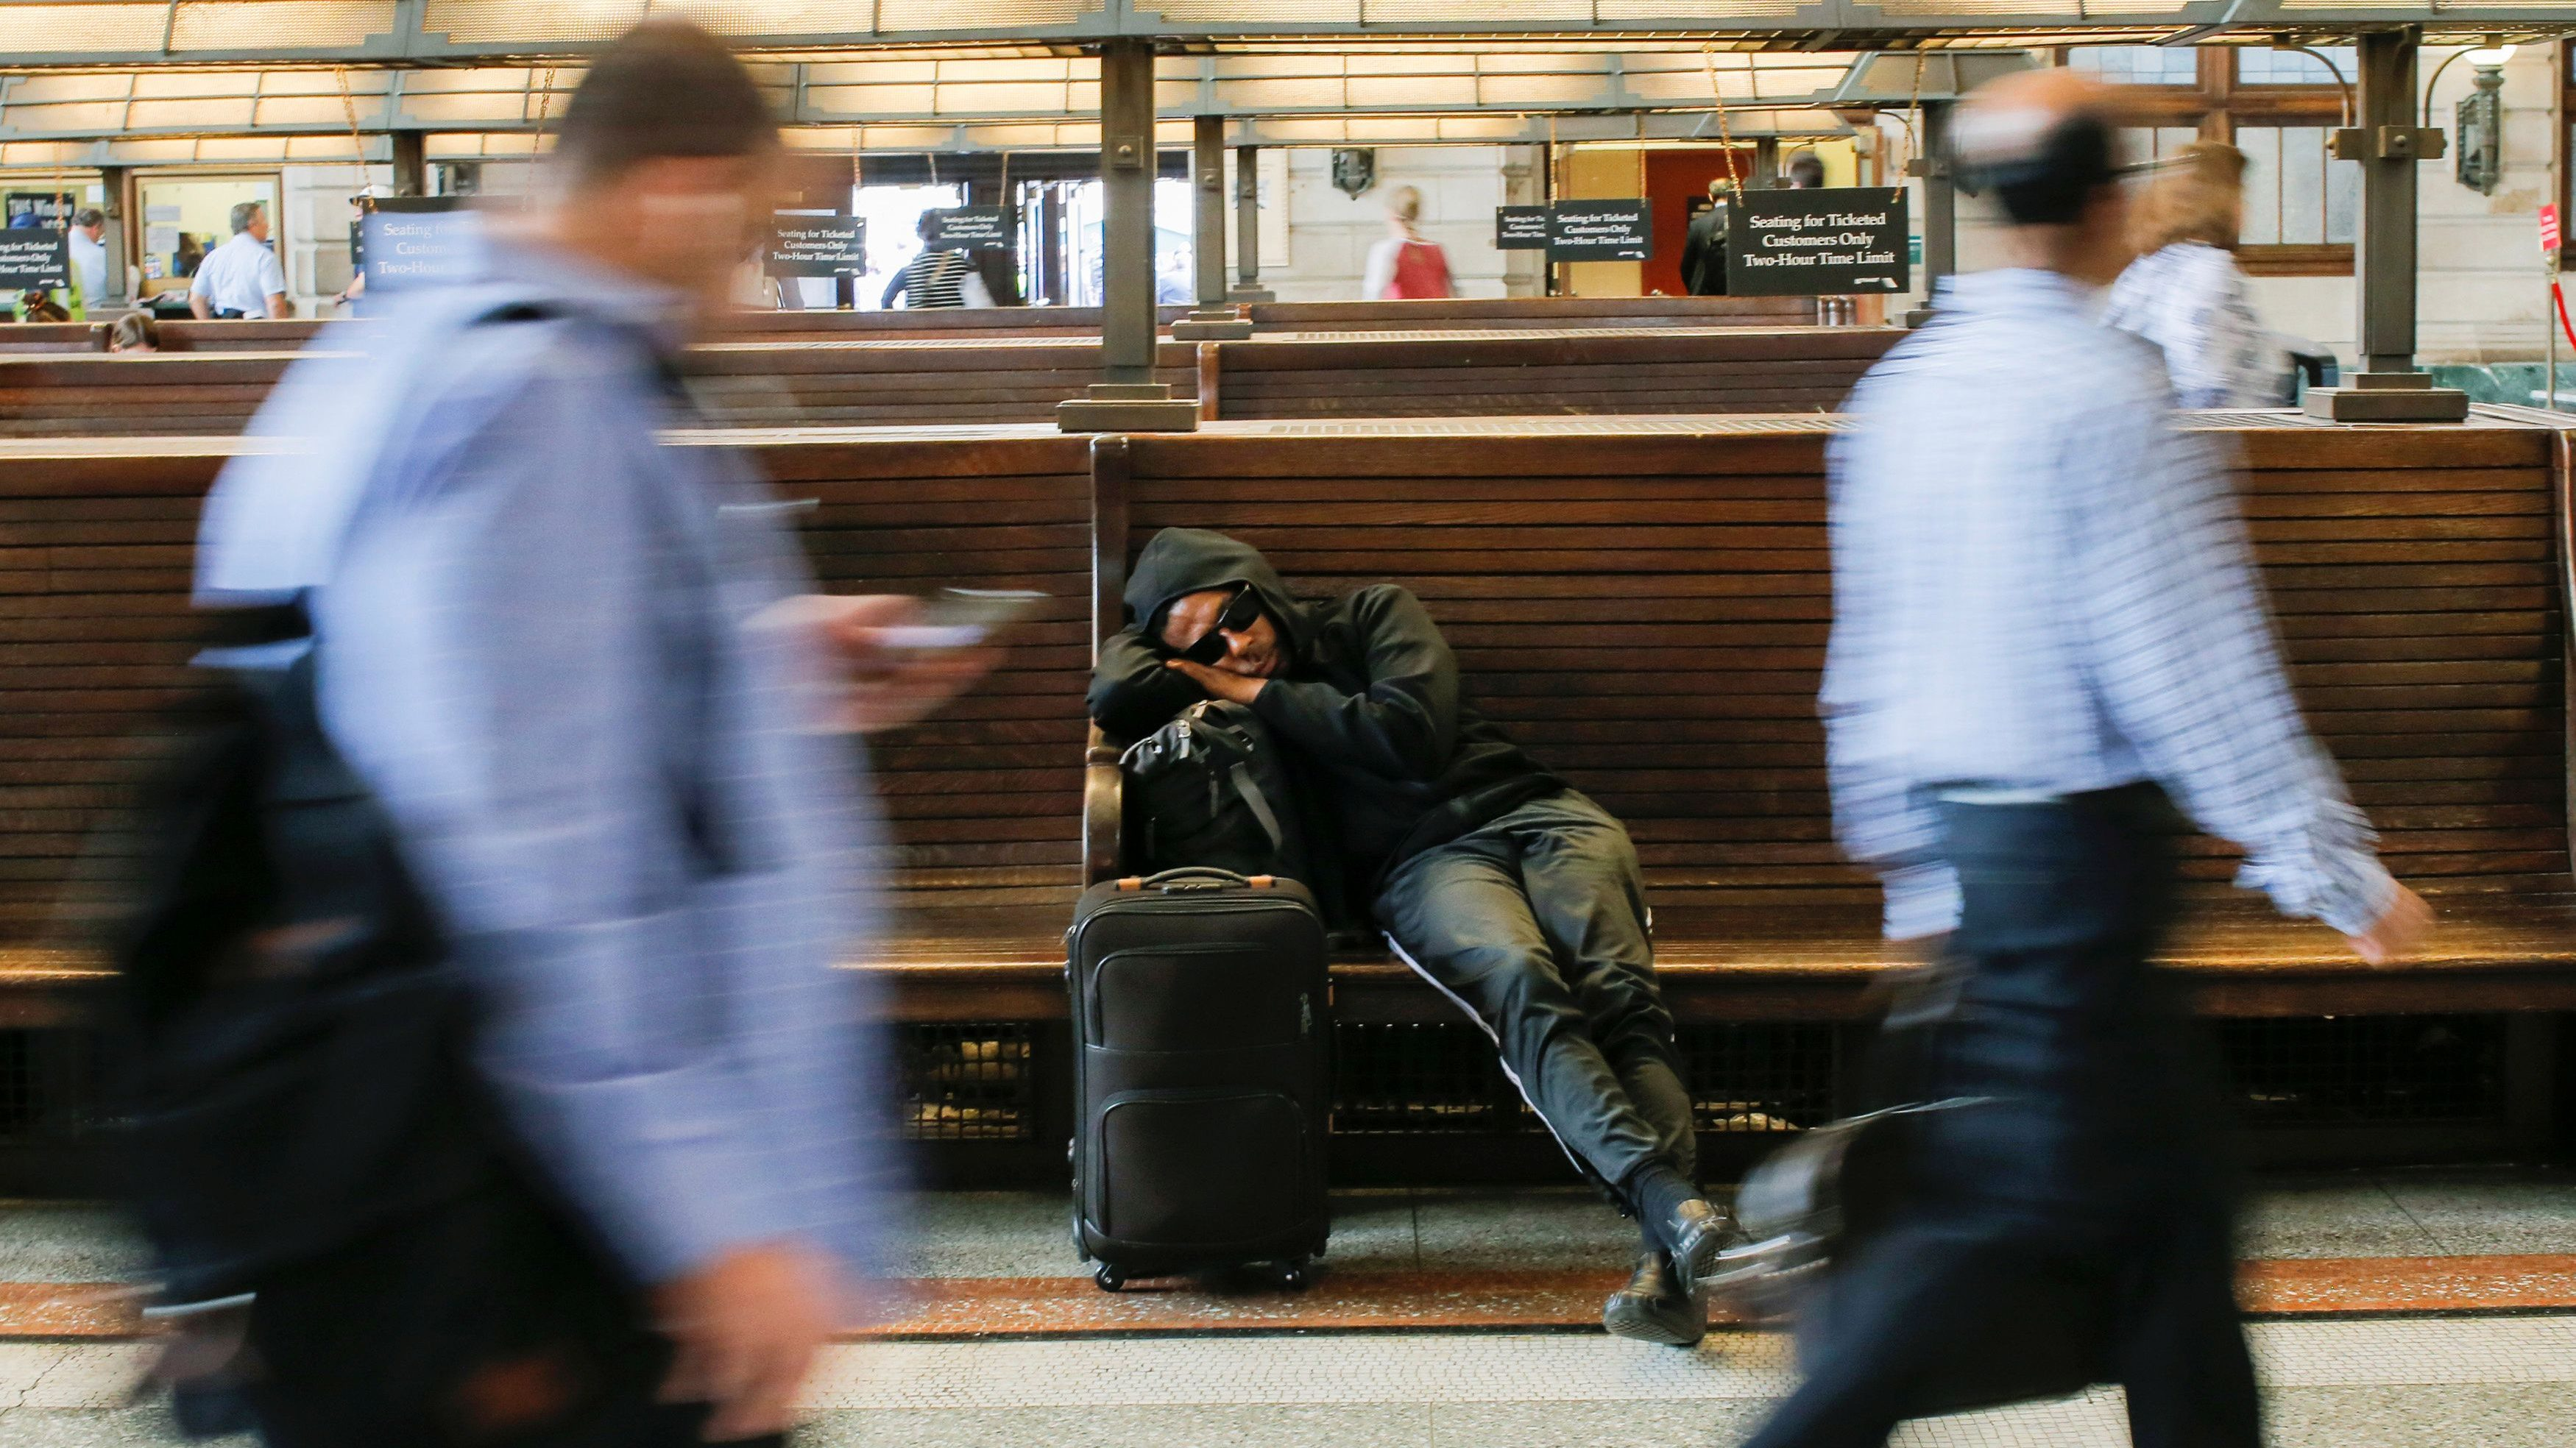 A man sleeps on a bench as people try to commute to New York at the Hoboken Terminal